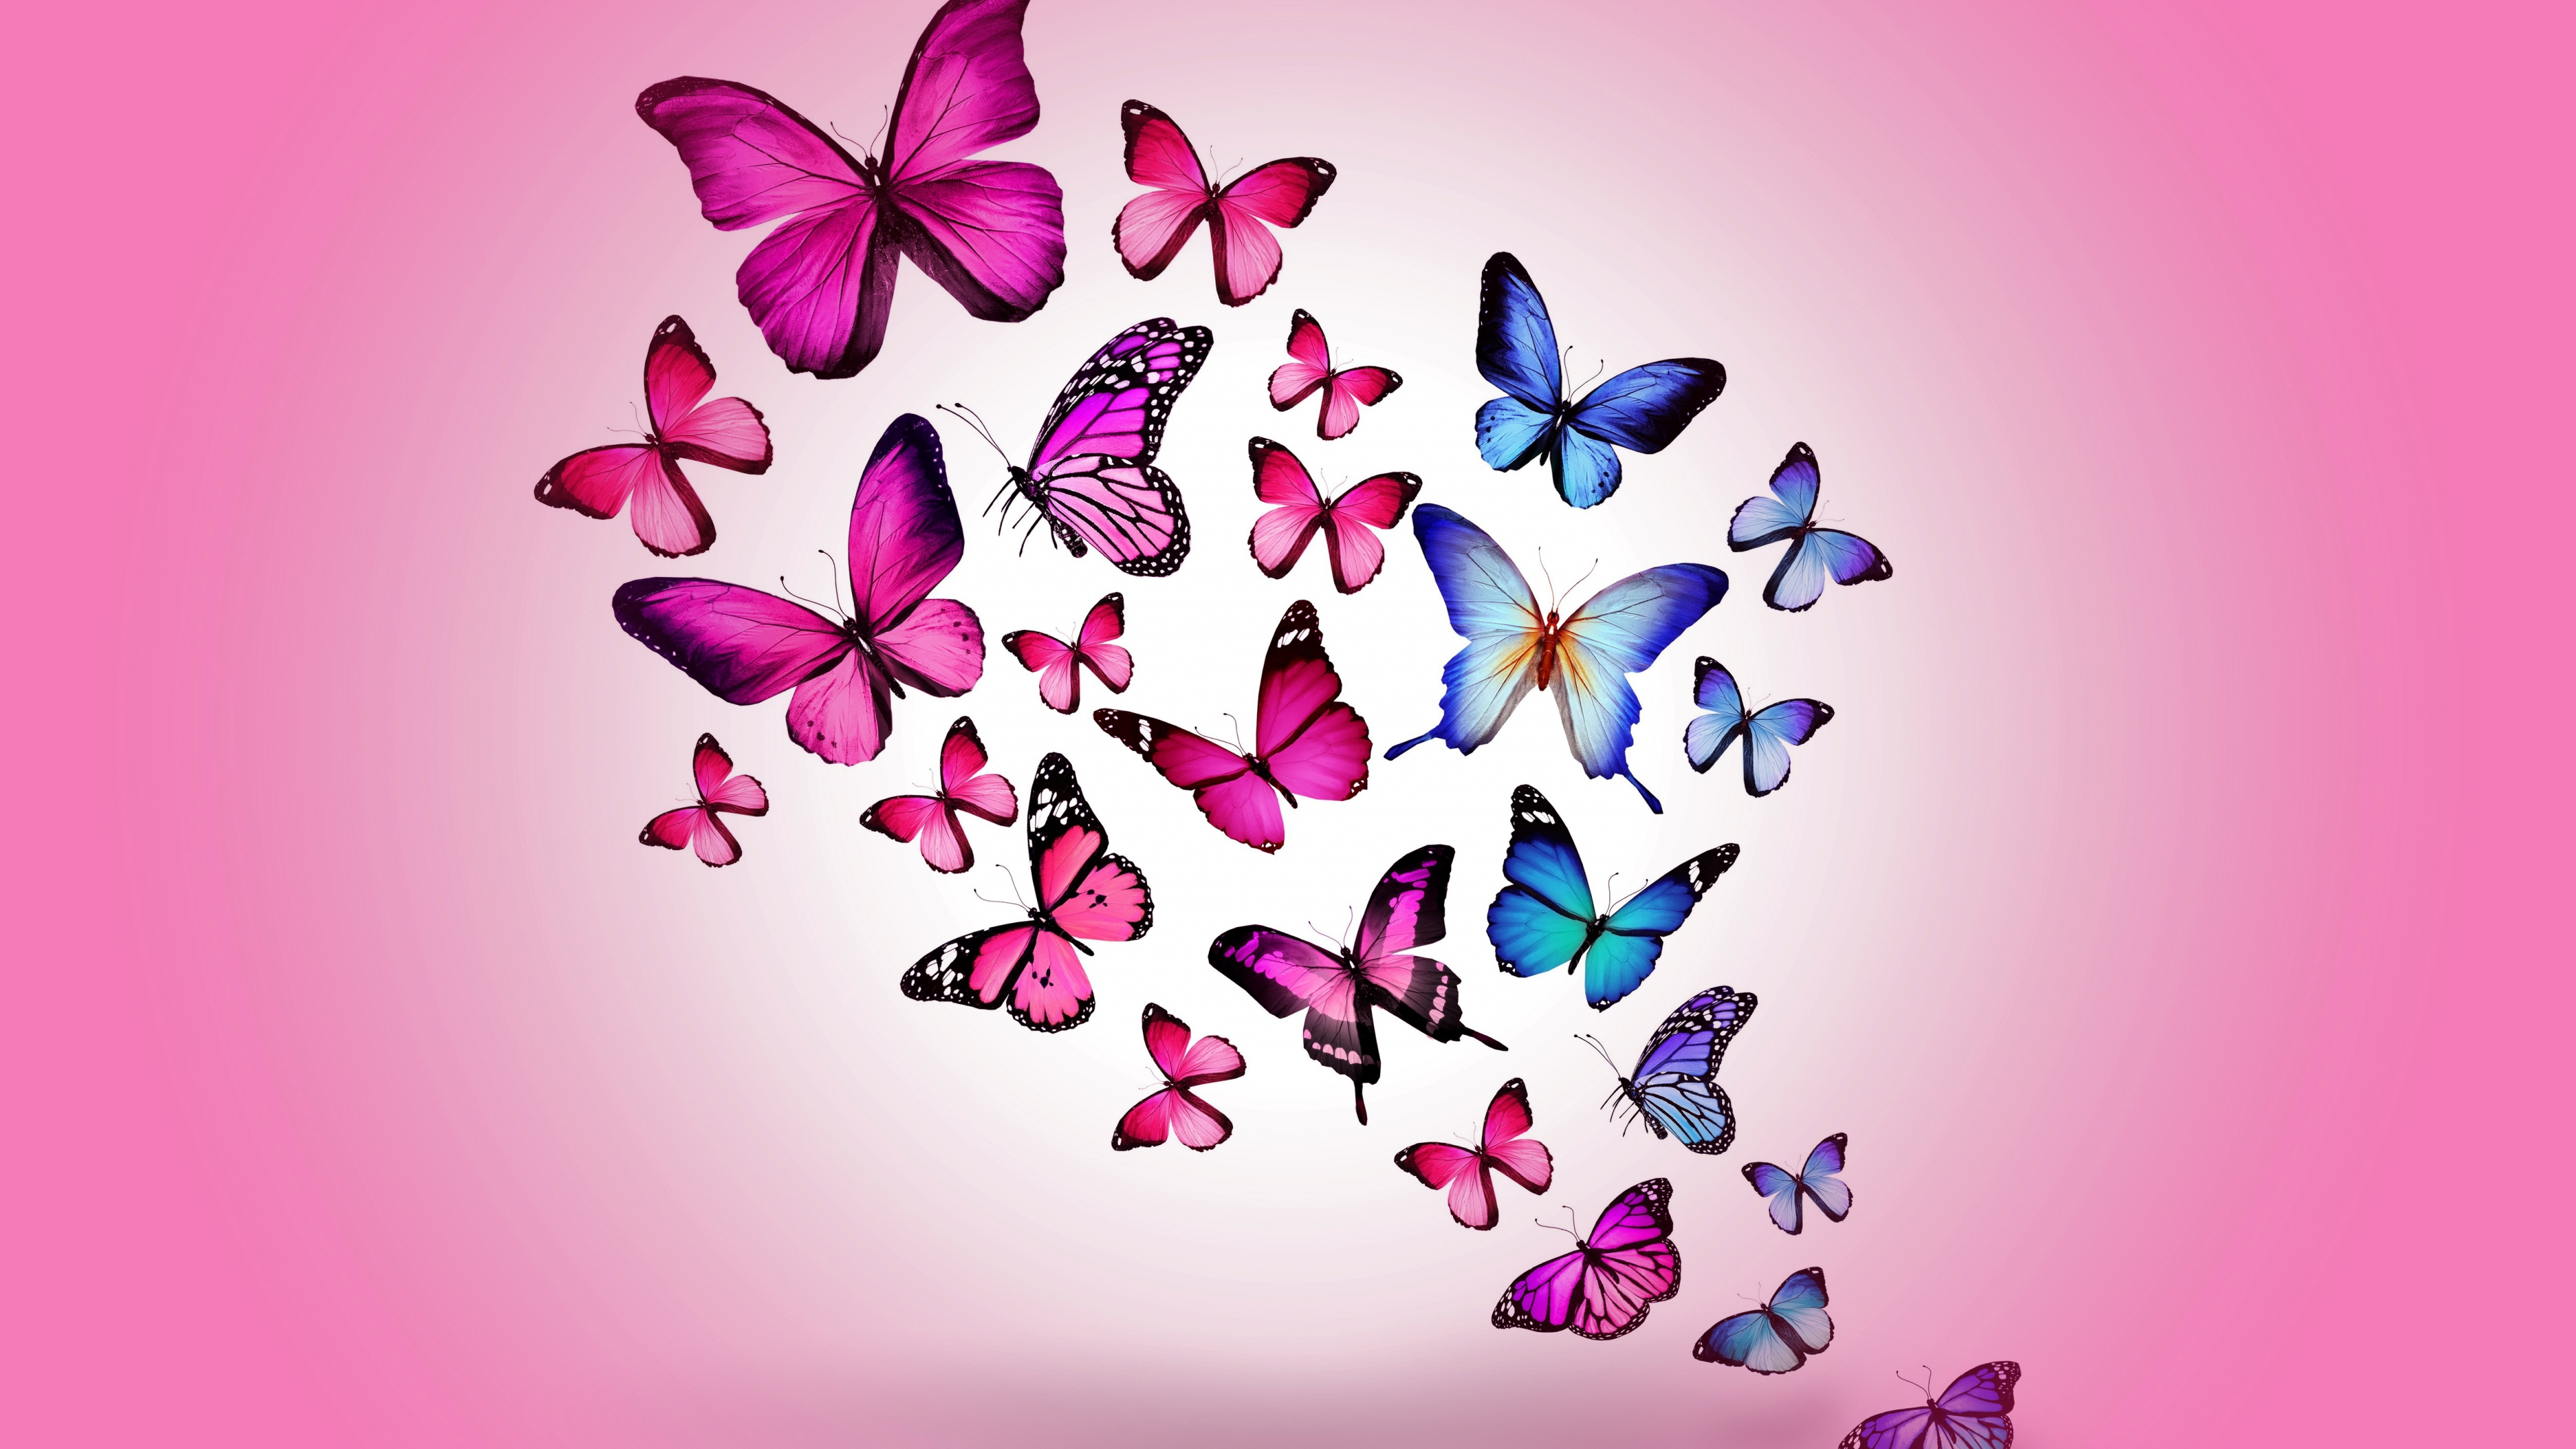 butterfly_drawing_flying_colorful_background_pink_96129_3840x2160